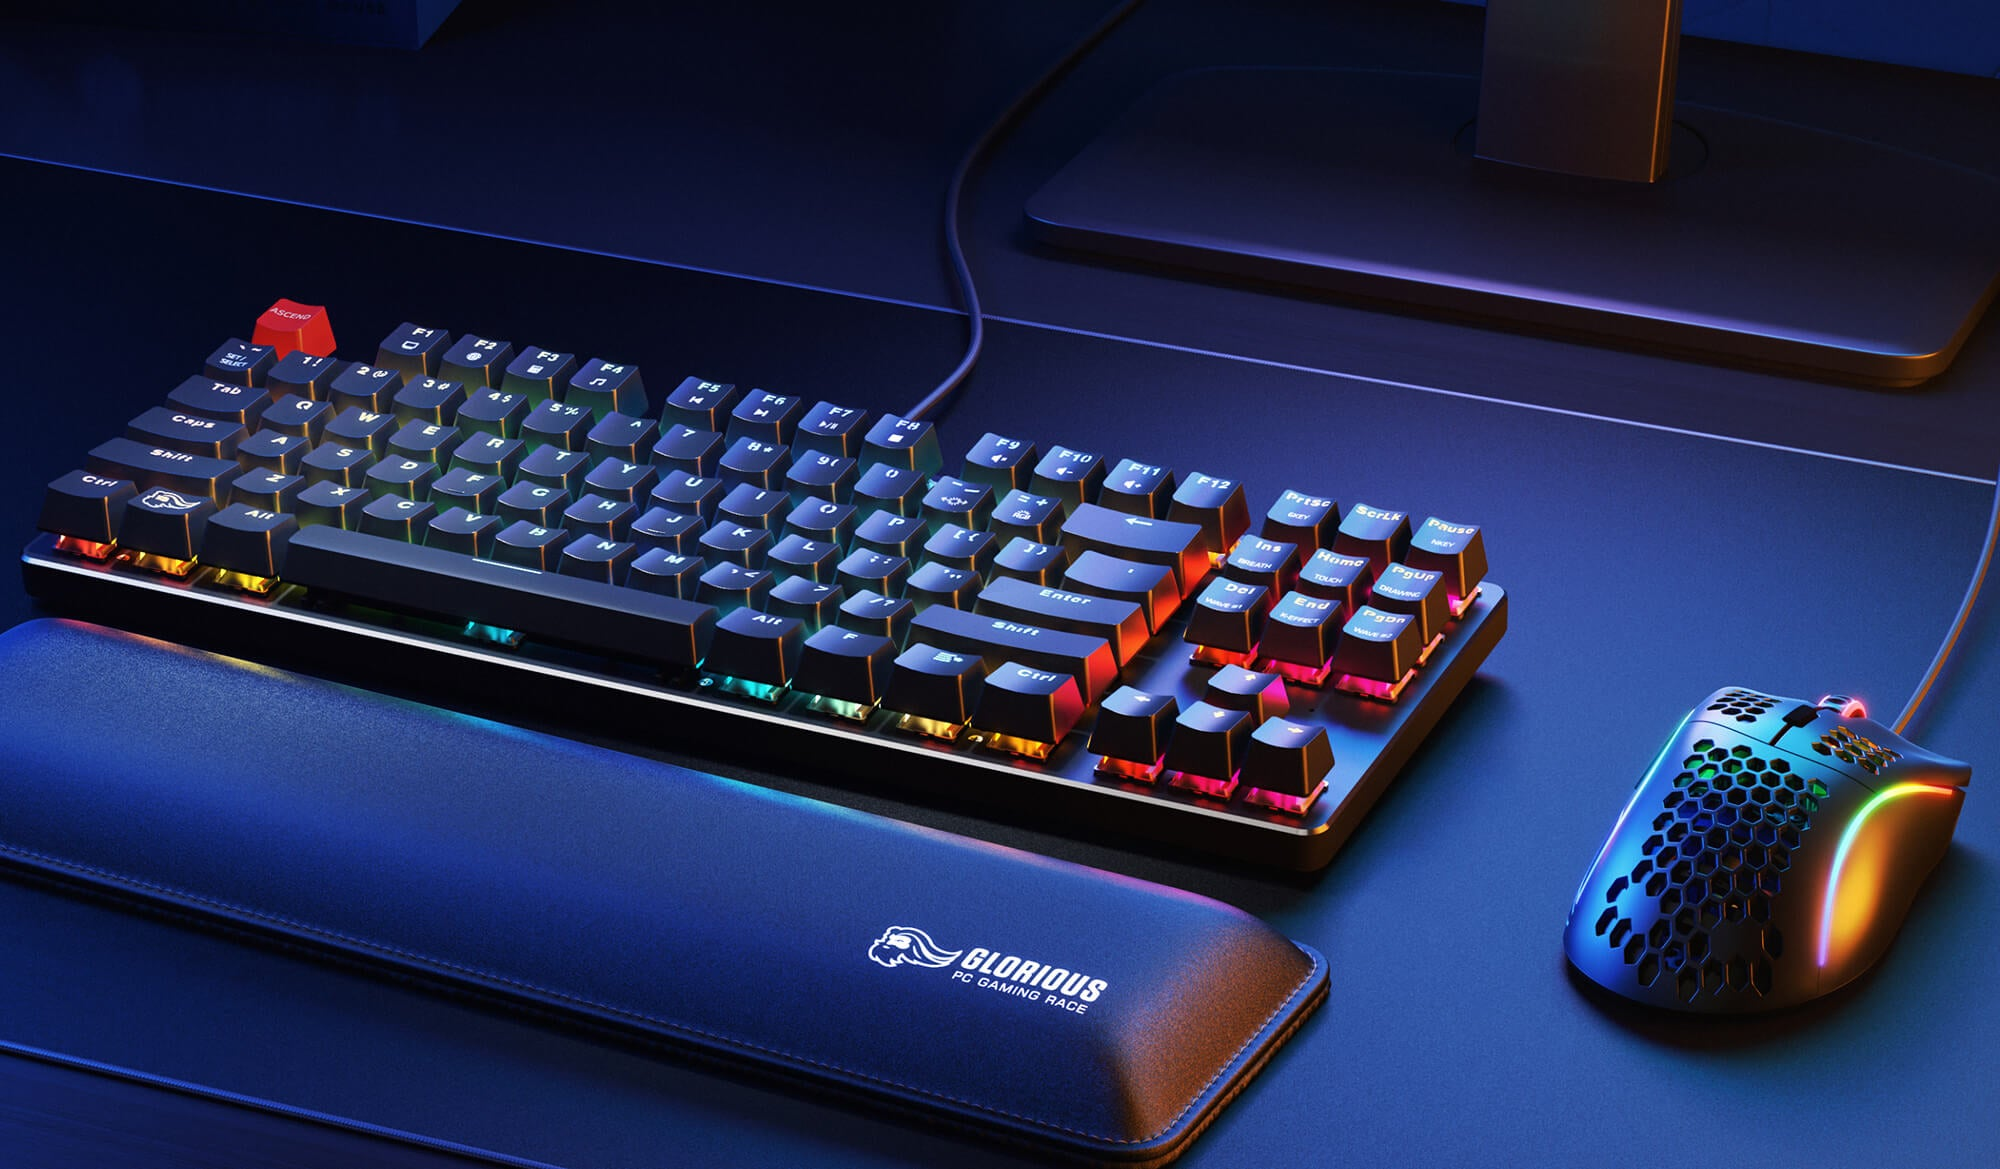 Glorious Gaming mouse and keyboard